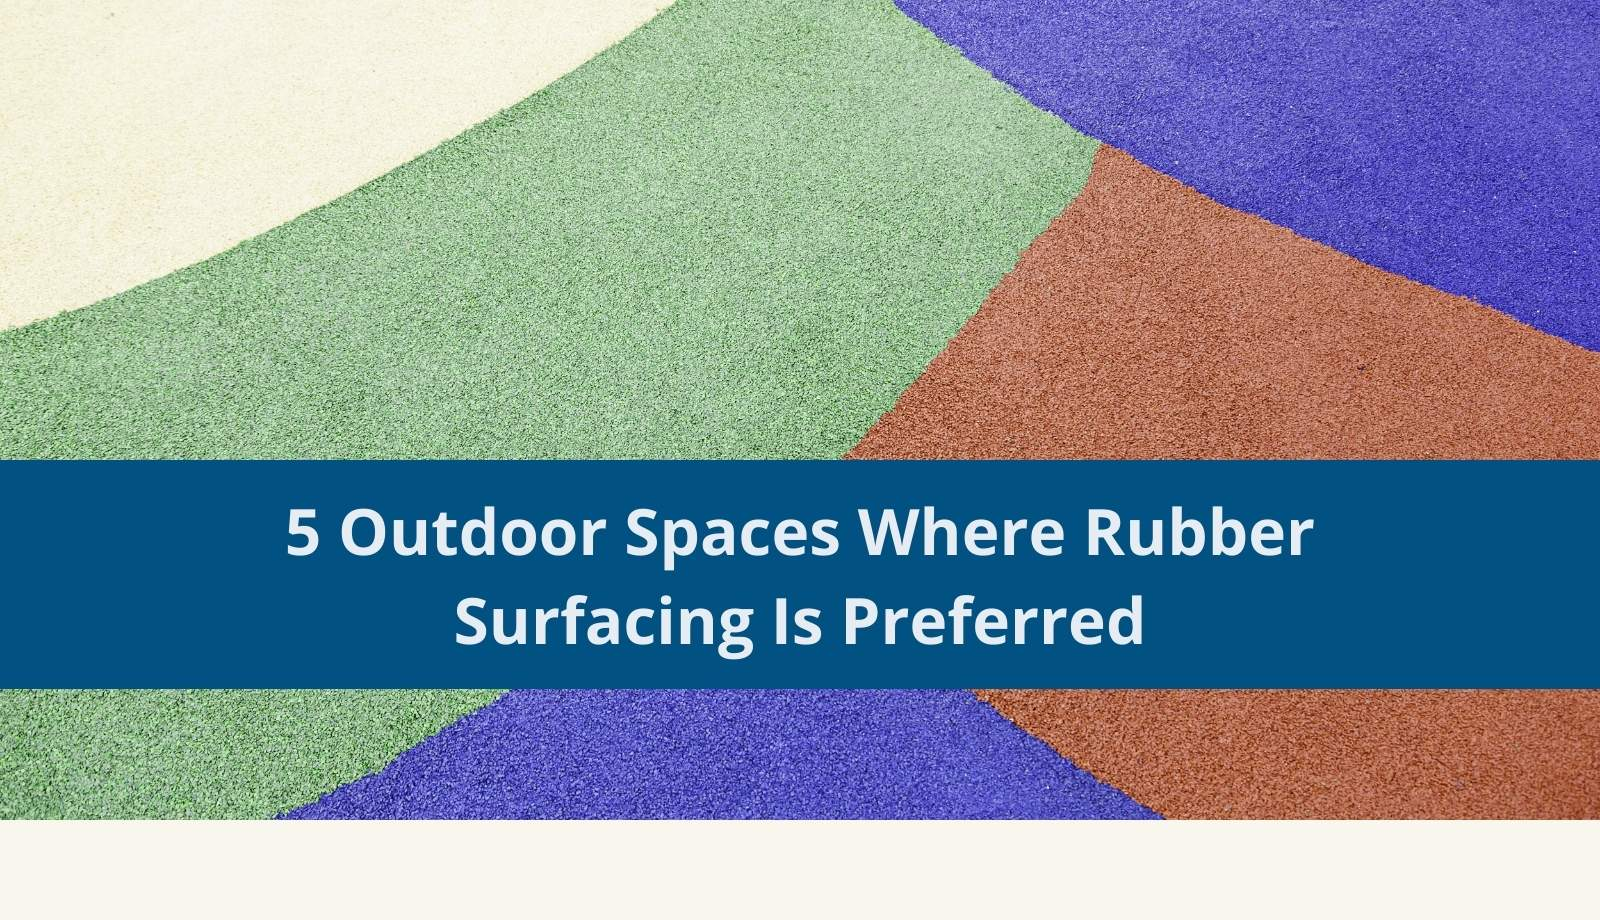 5 Outdoor Spaces Where Rubber Surfacing Is Preferred